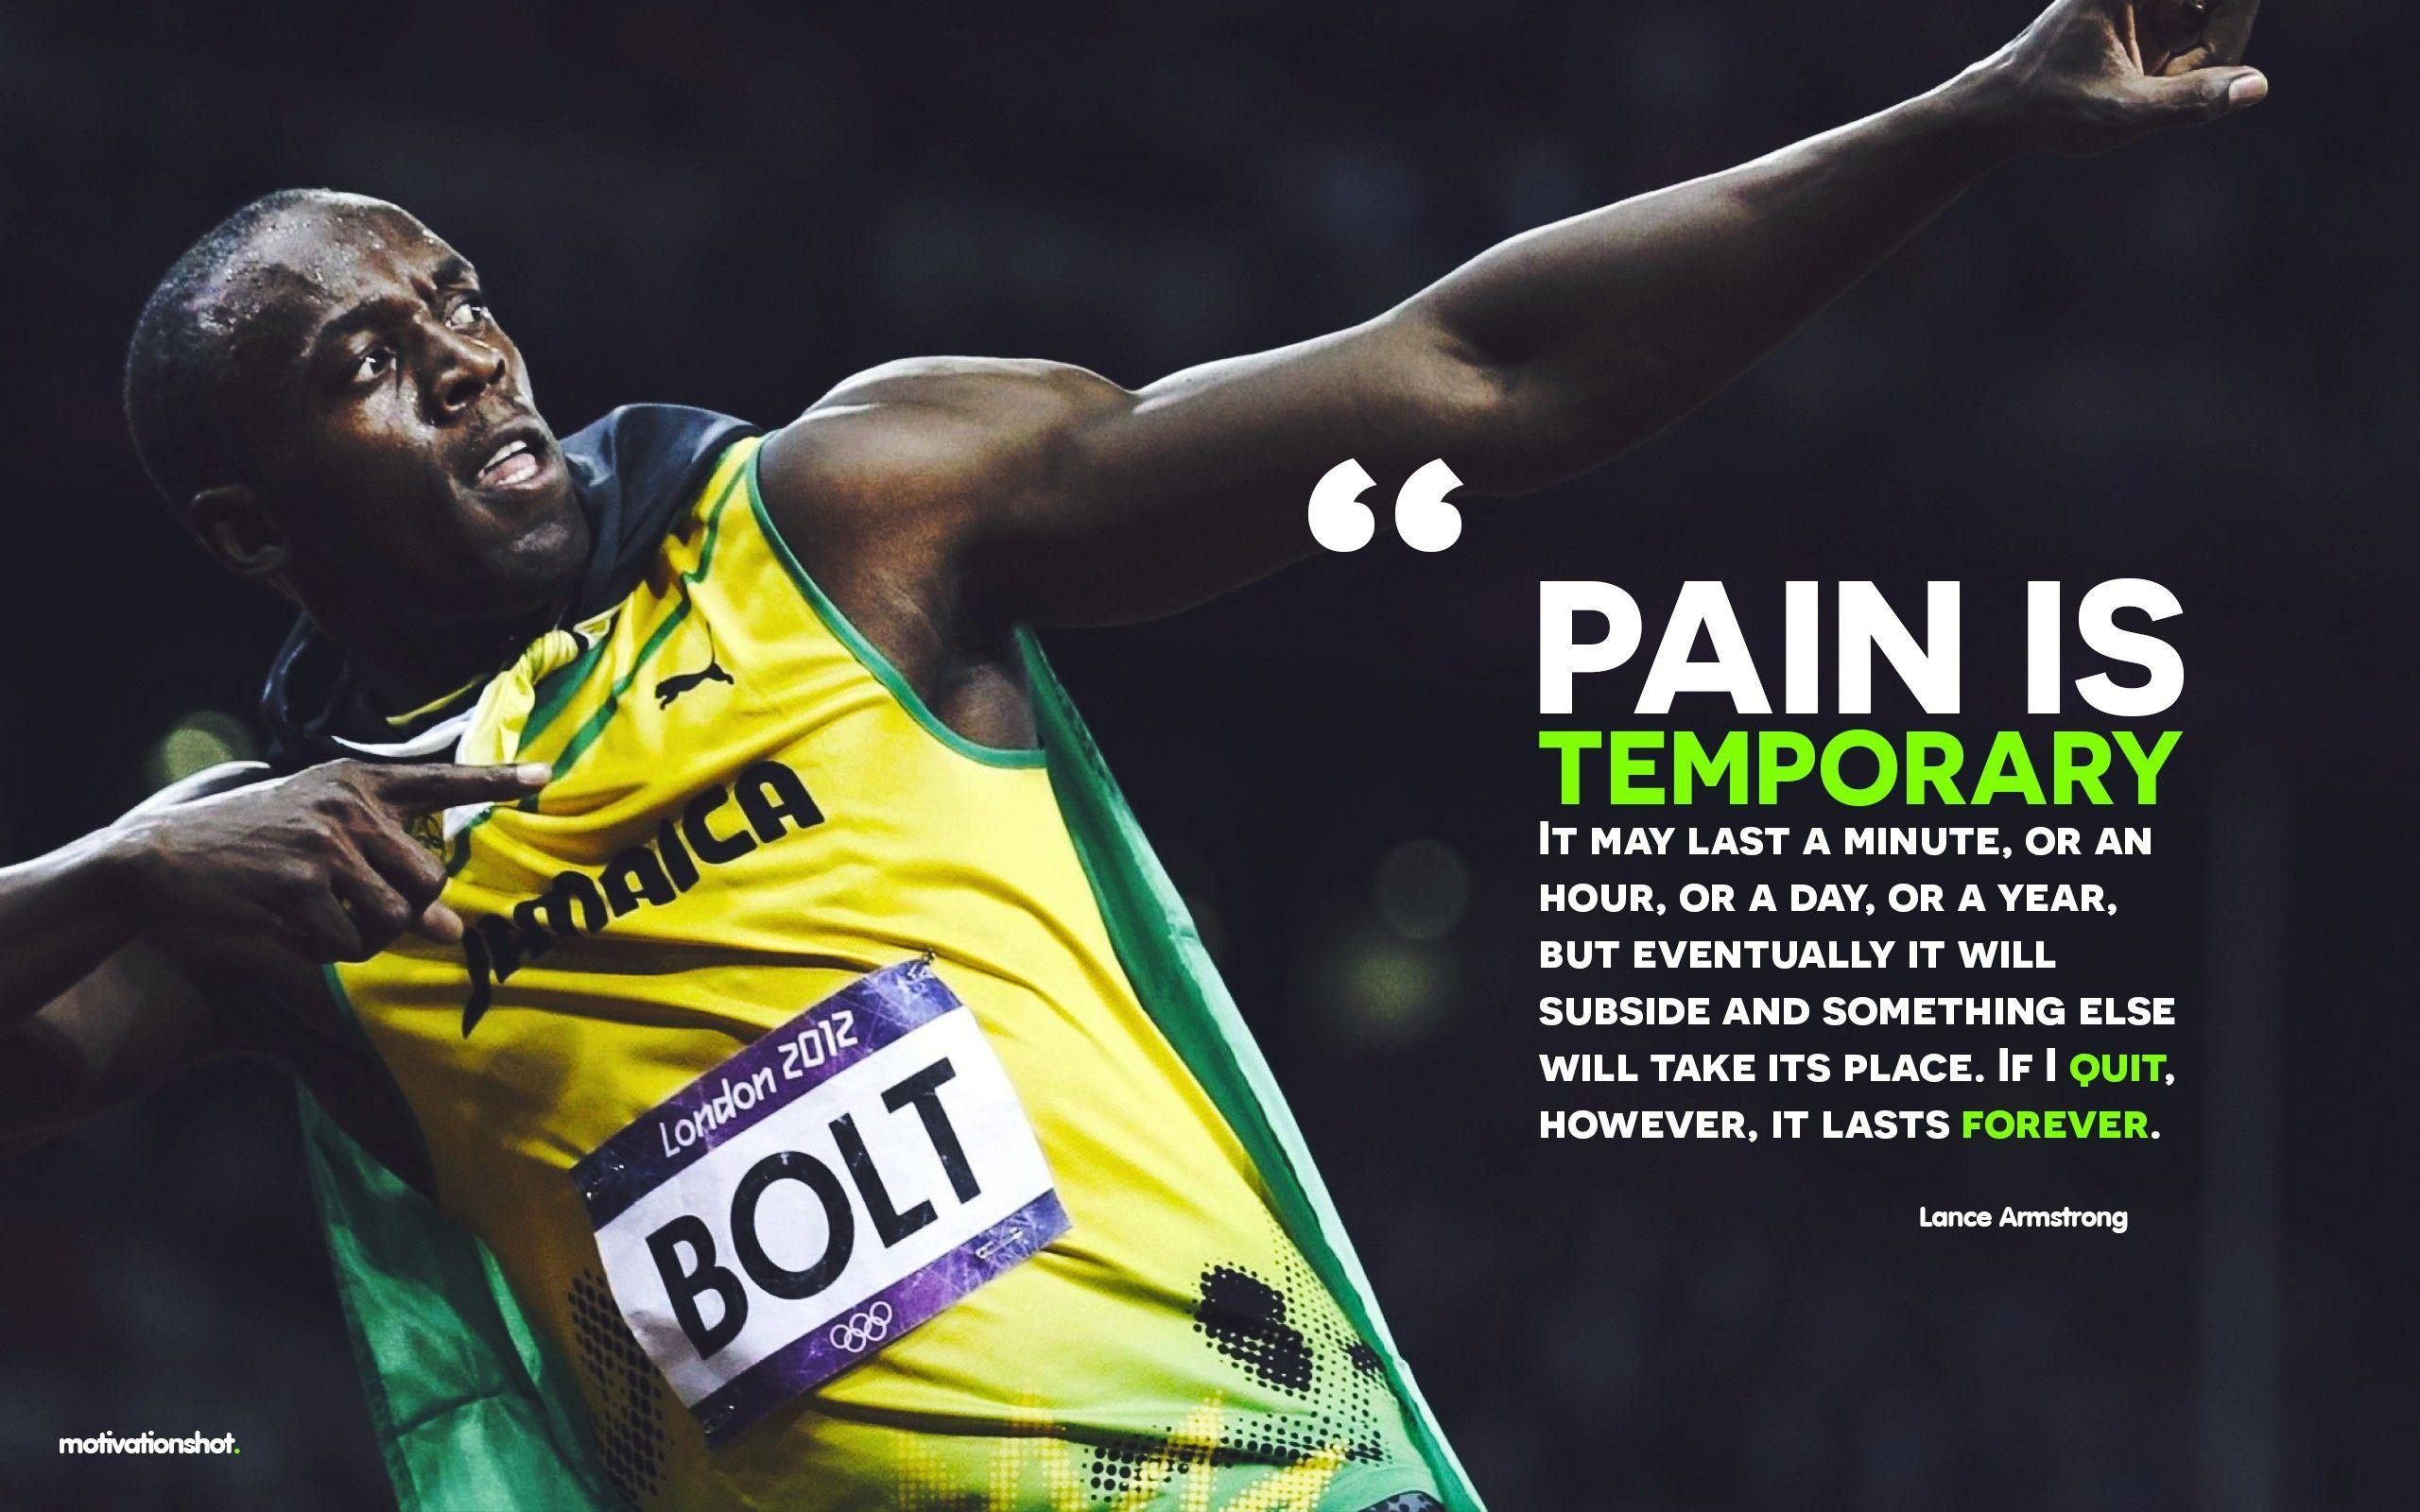 bolt quotes wallpapers motivational usain sports sport quote running poster athletics endurance 4k sprint action athletes background 1080p success desktop